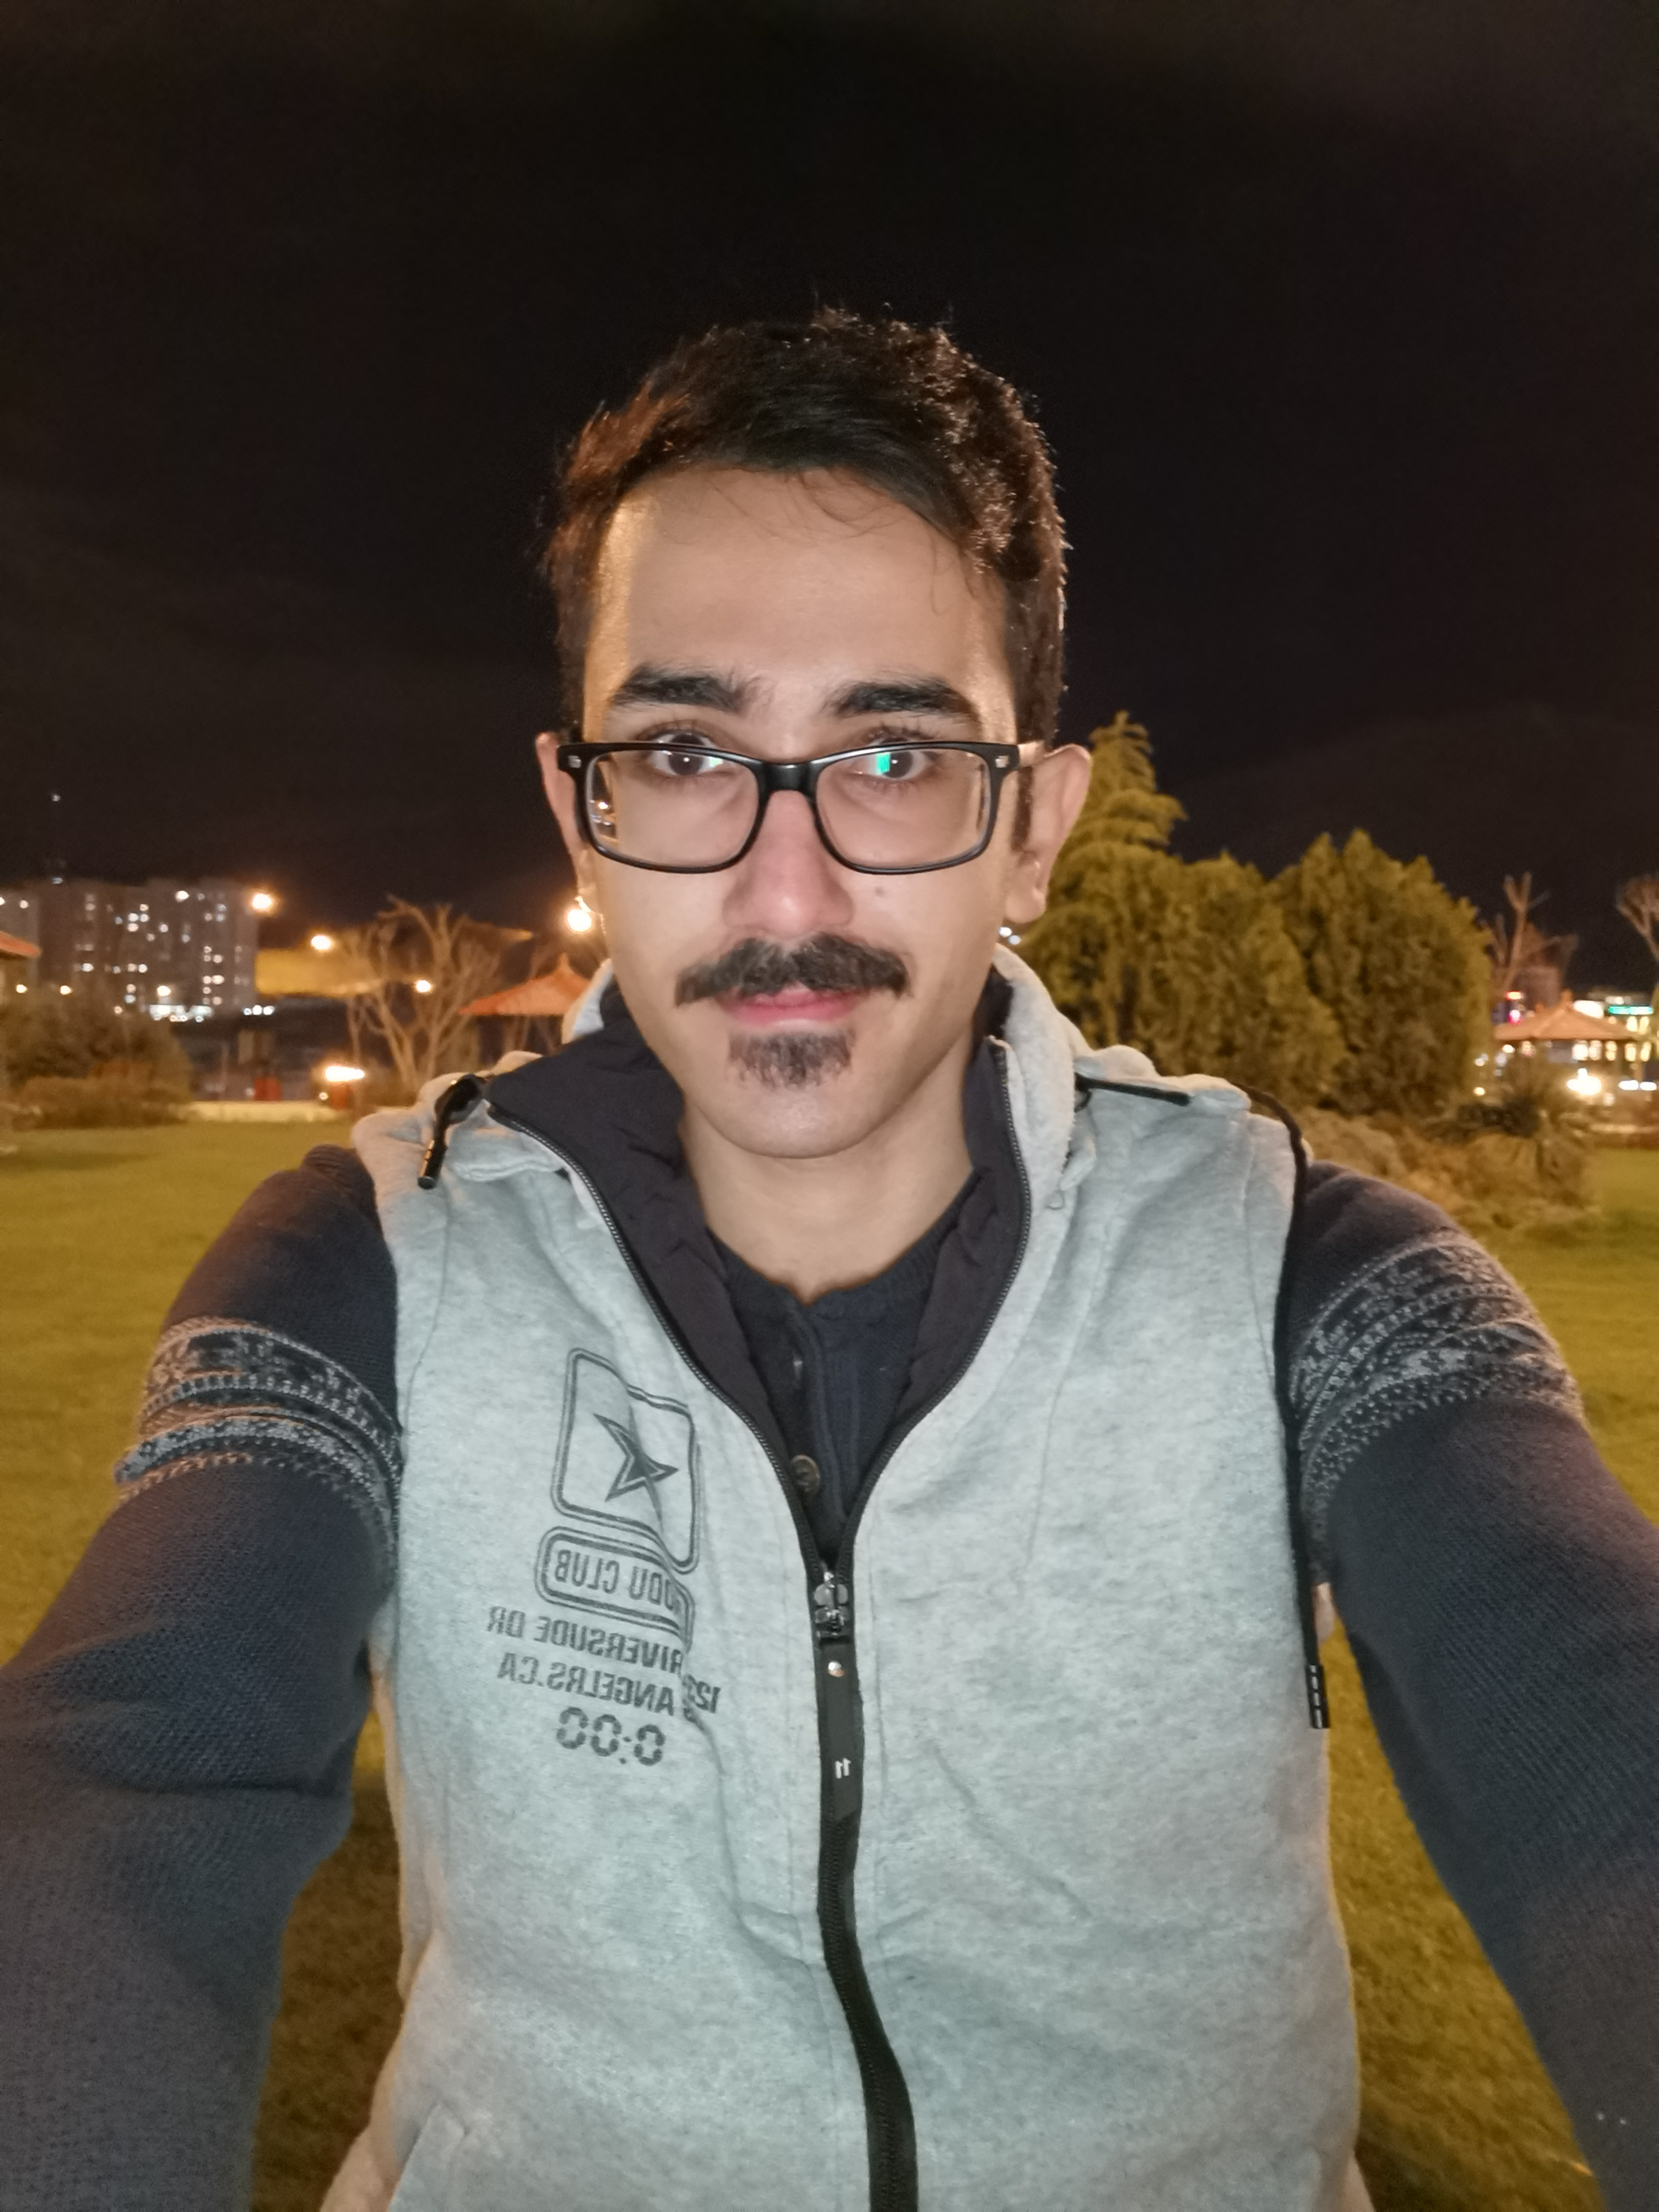 Huawei P30 Pro Selfie - Lowlight - With Flash